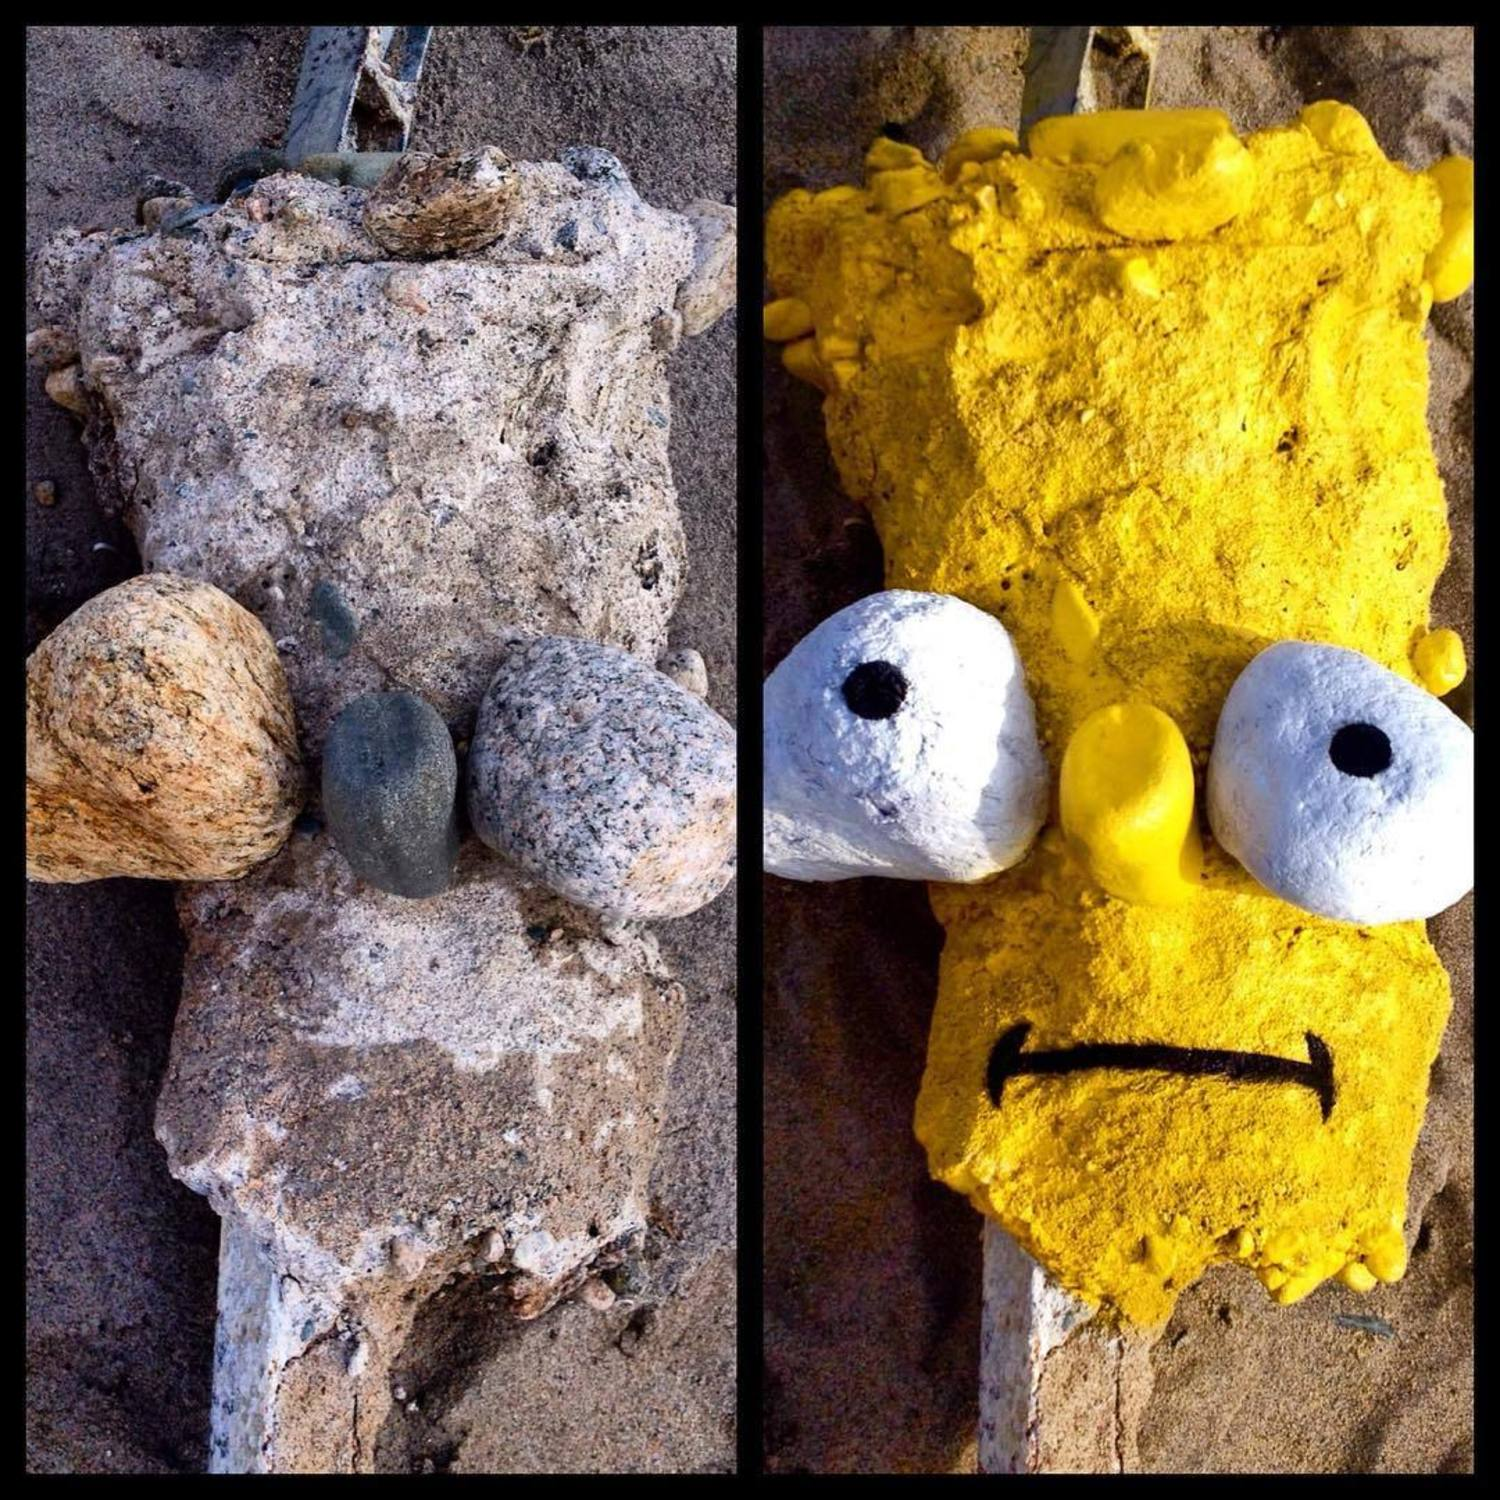 BEFORE & AFTER 👀 Found this street sign end post as is. #bartsimpson #after #streetart #cartoonface #bart #simpson #tombobnyc #stencilart #thesimpsons #👀 #beforeandafter #tombob